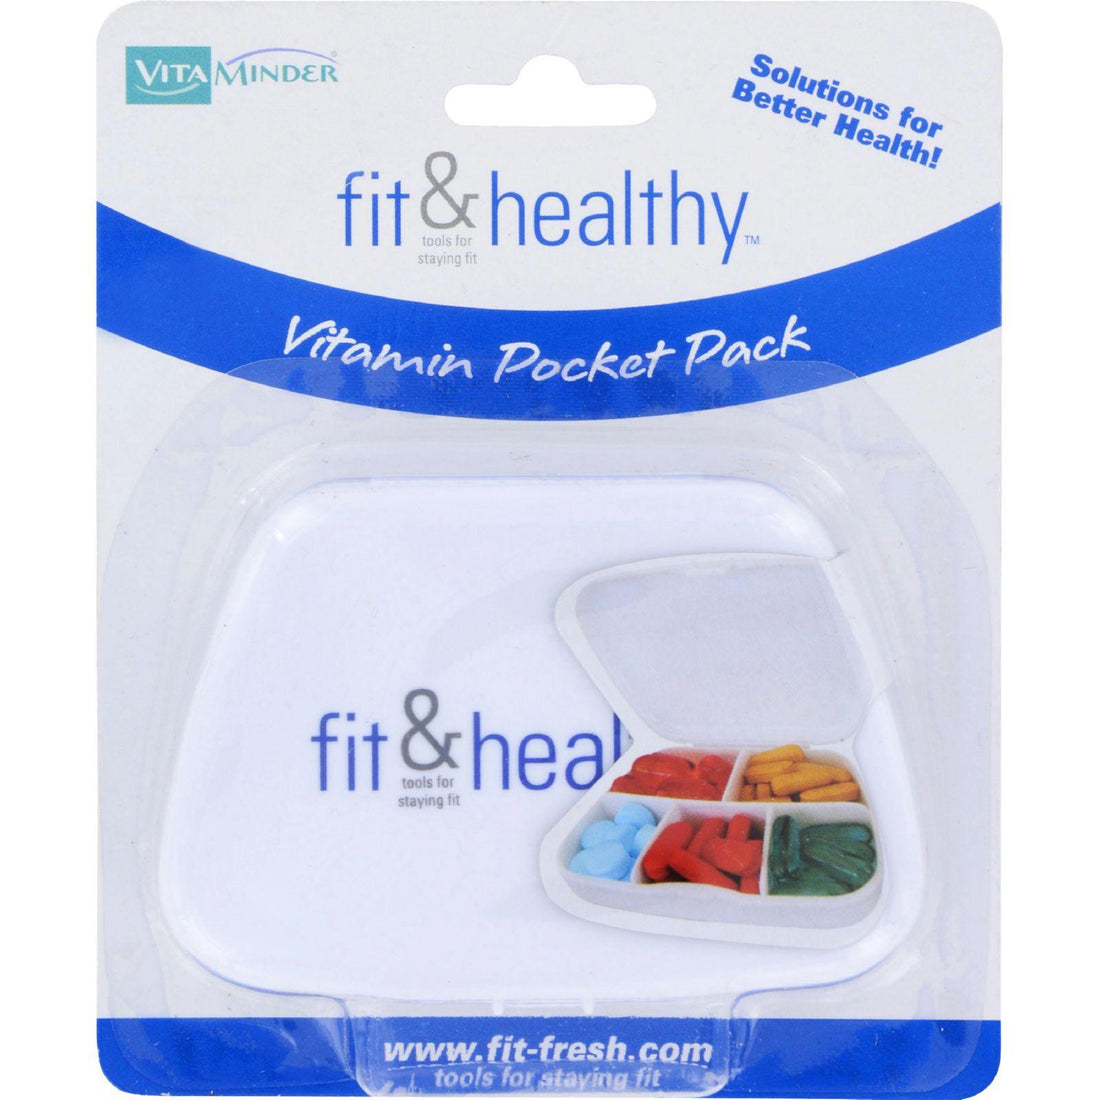 Mother Mantis: Fit And Healthy Vitaminder Vitamin Pocket Pack - 1 Case Fit And Healthy